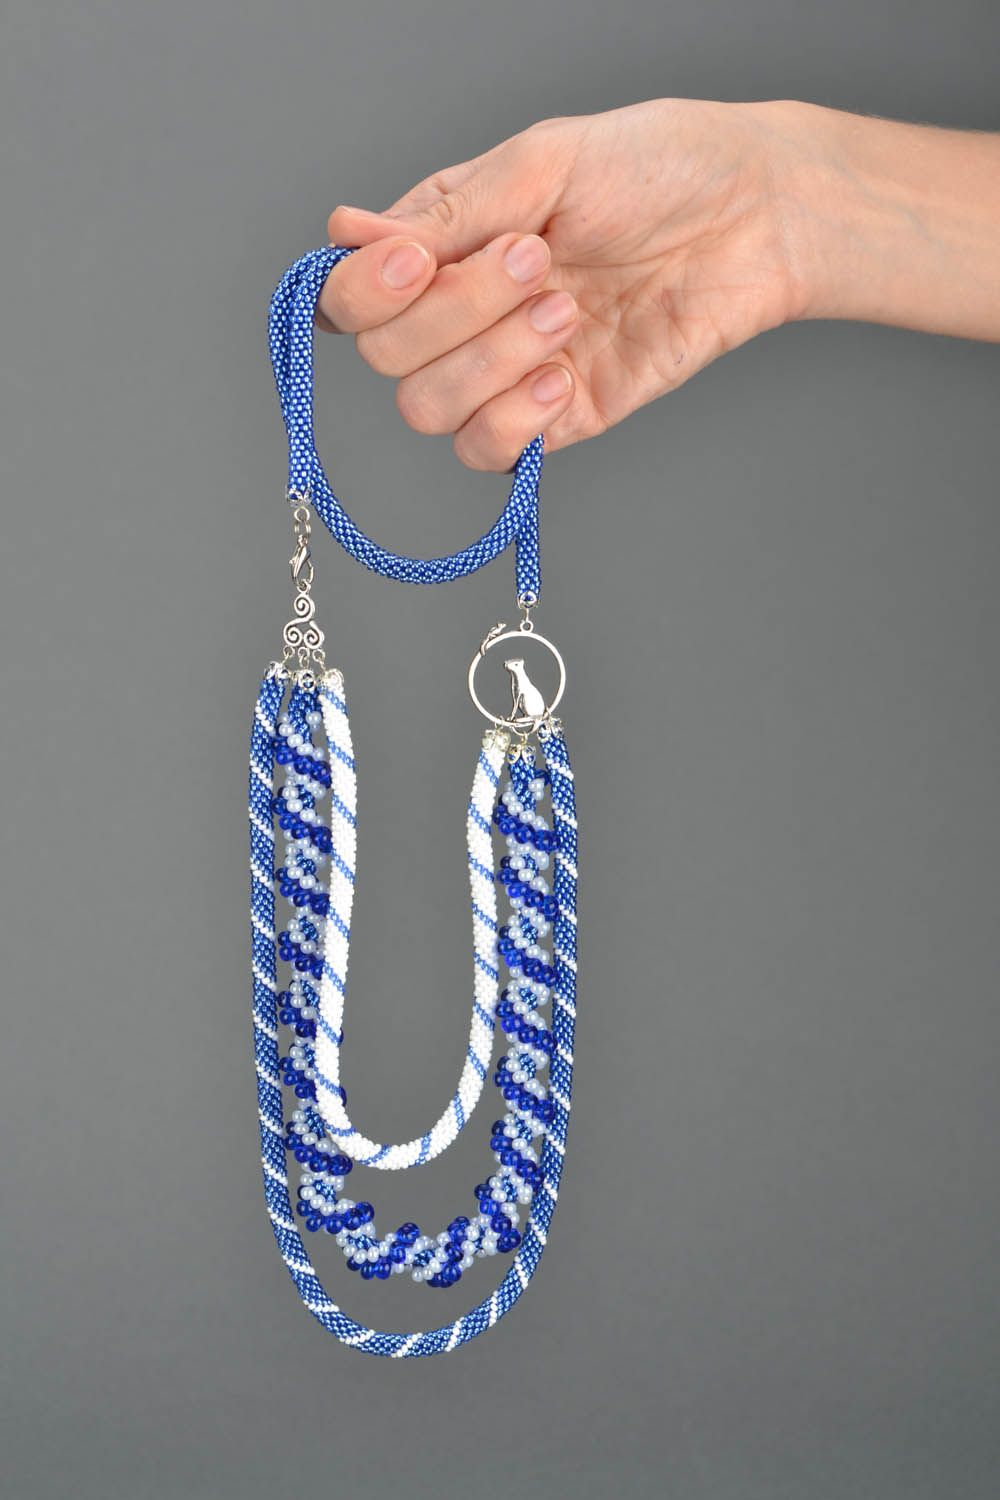 Beaded necklace Rime photo 2